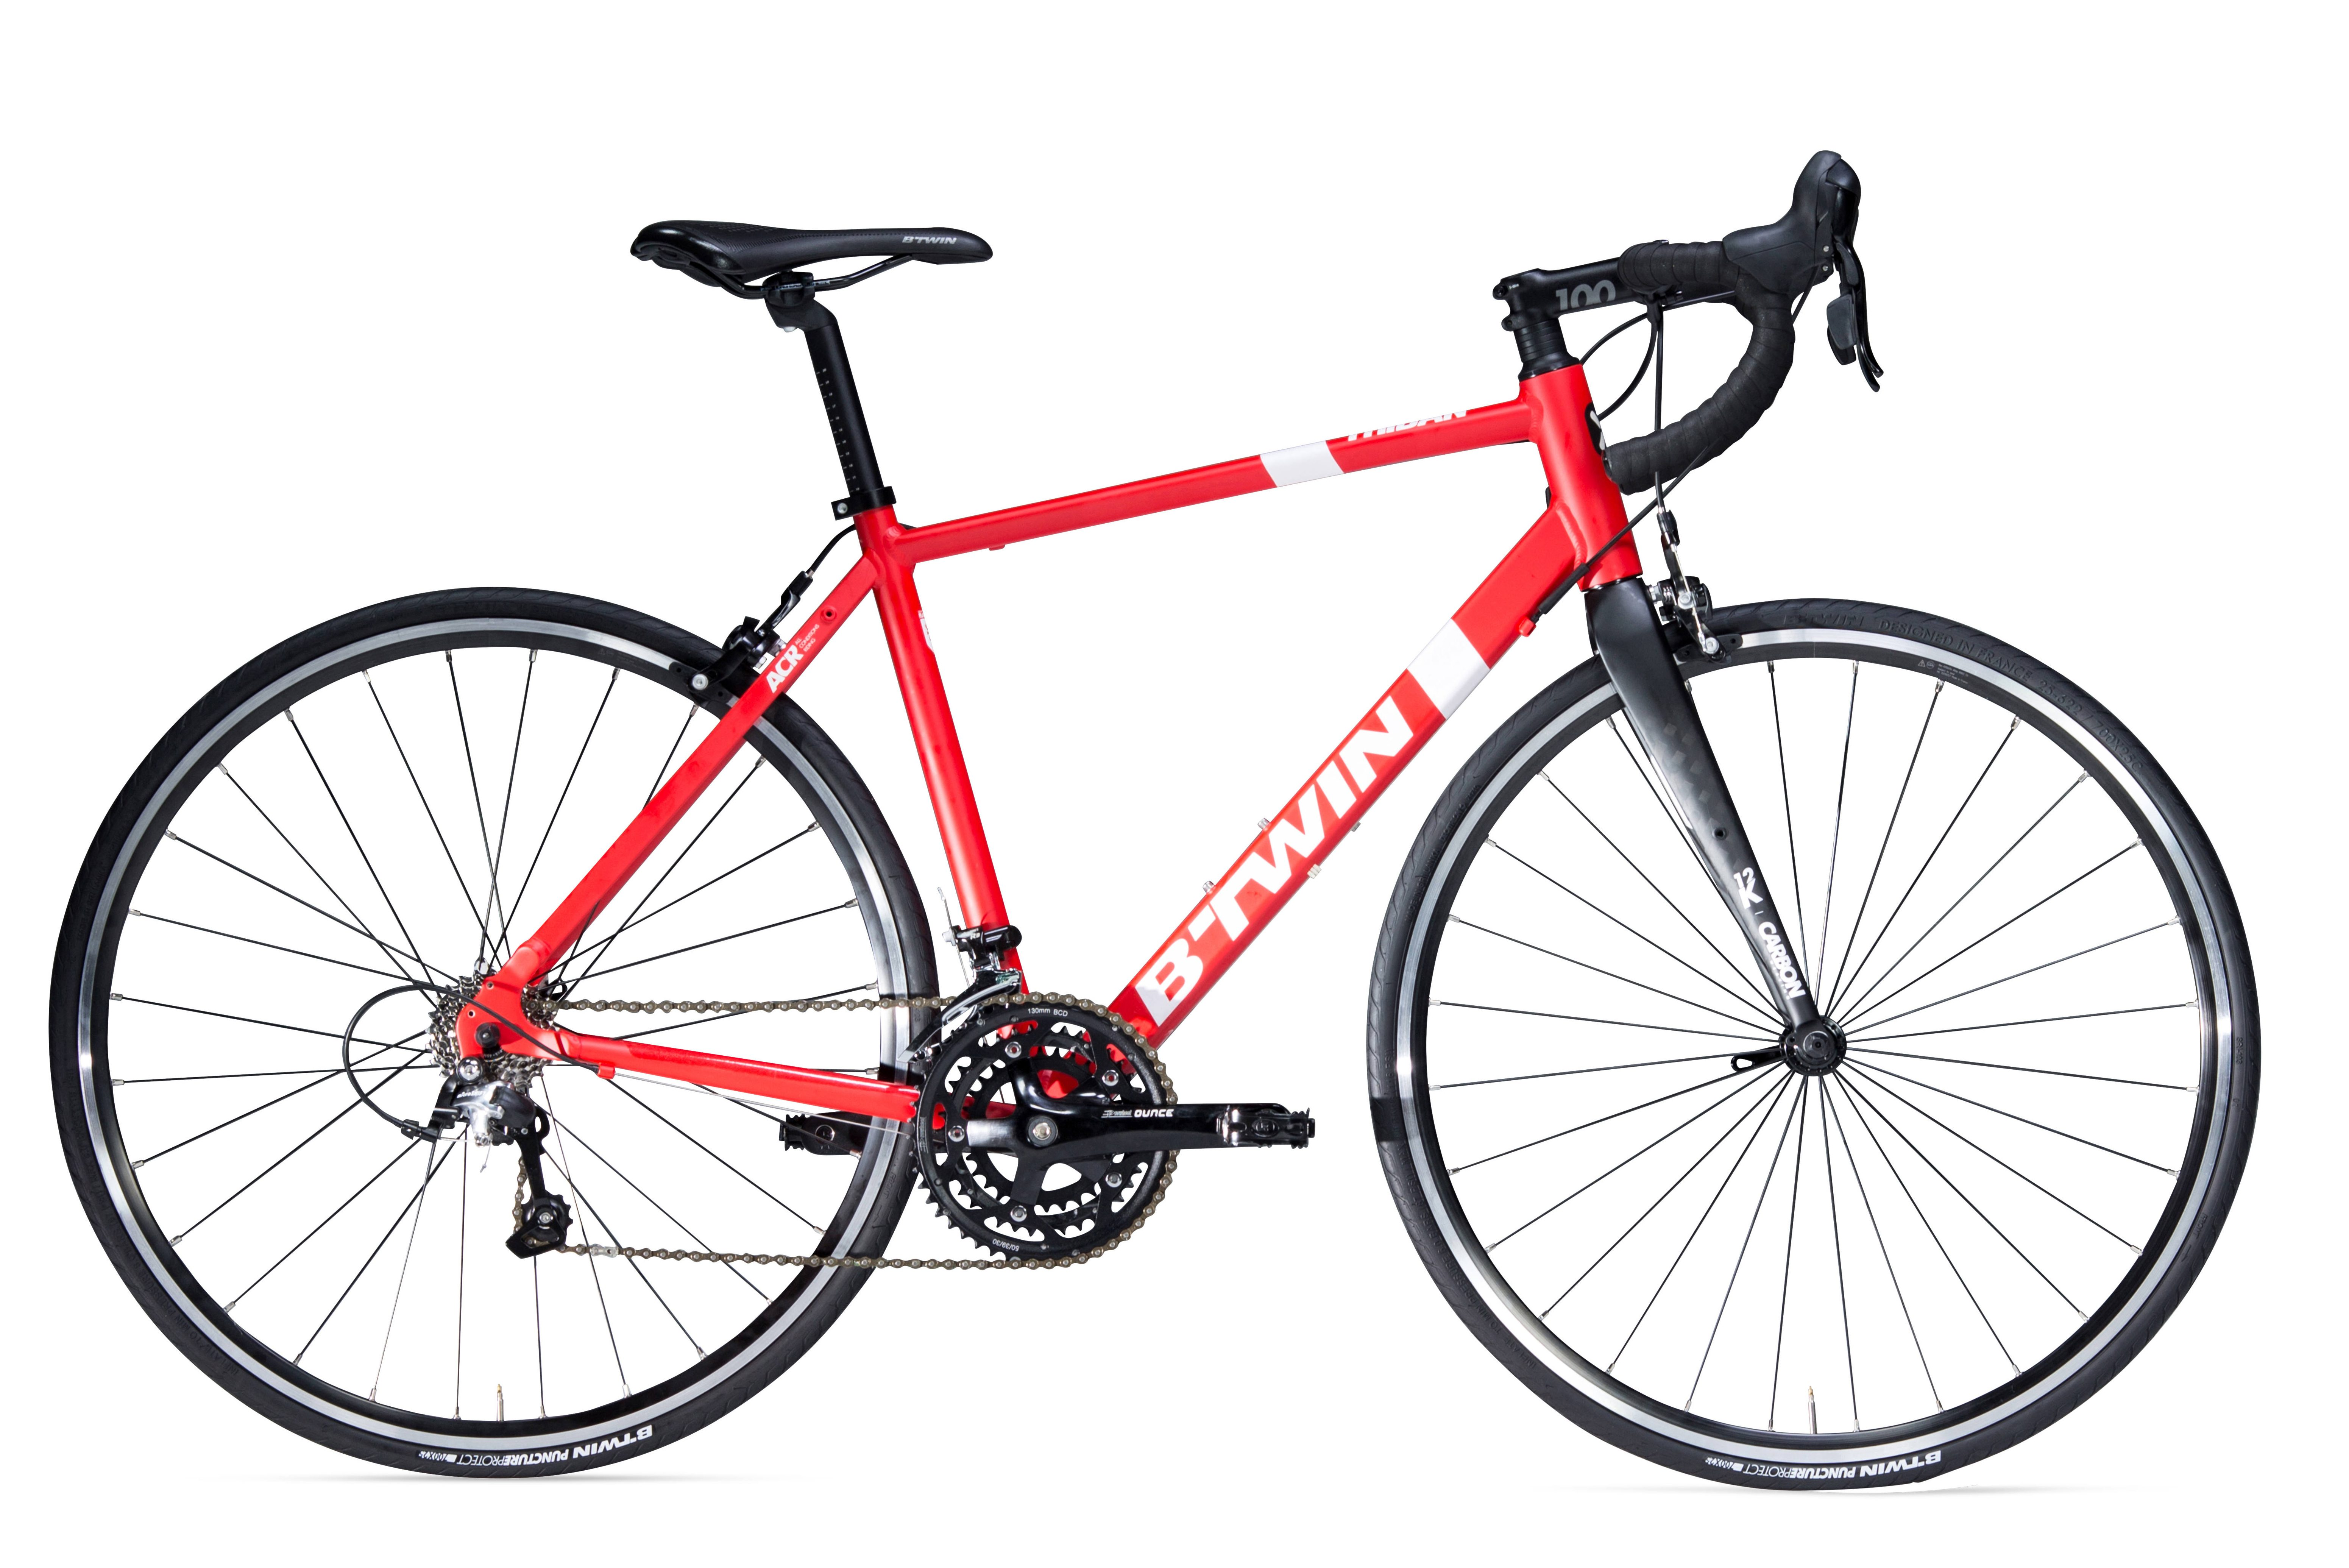 a5a113039ac B'Twin Bikes: guide to Triban and Ultra road bikes - Cycling Weekly